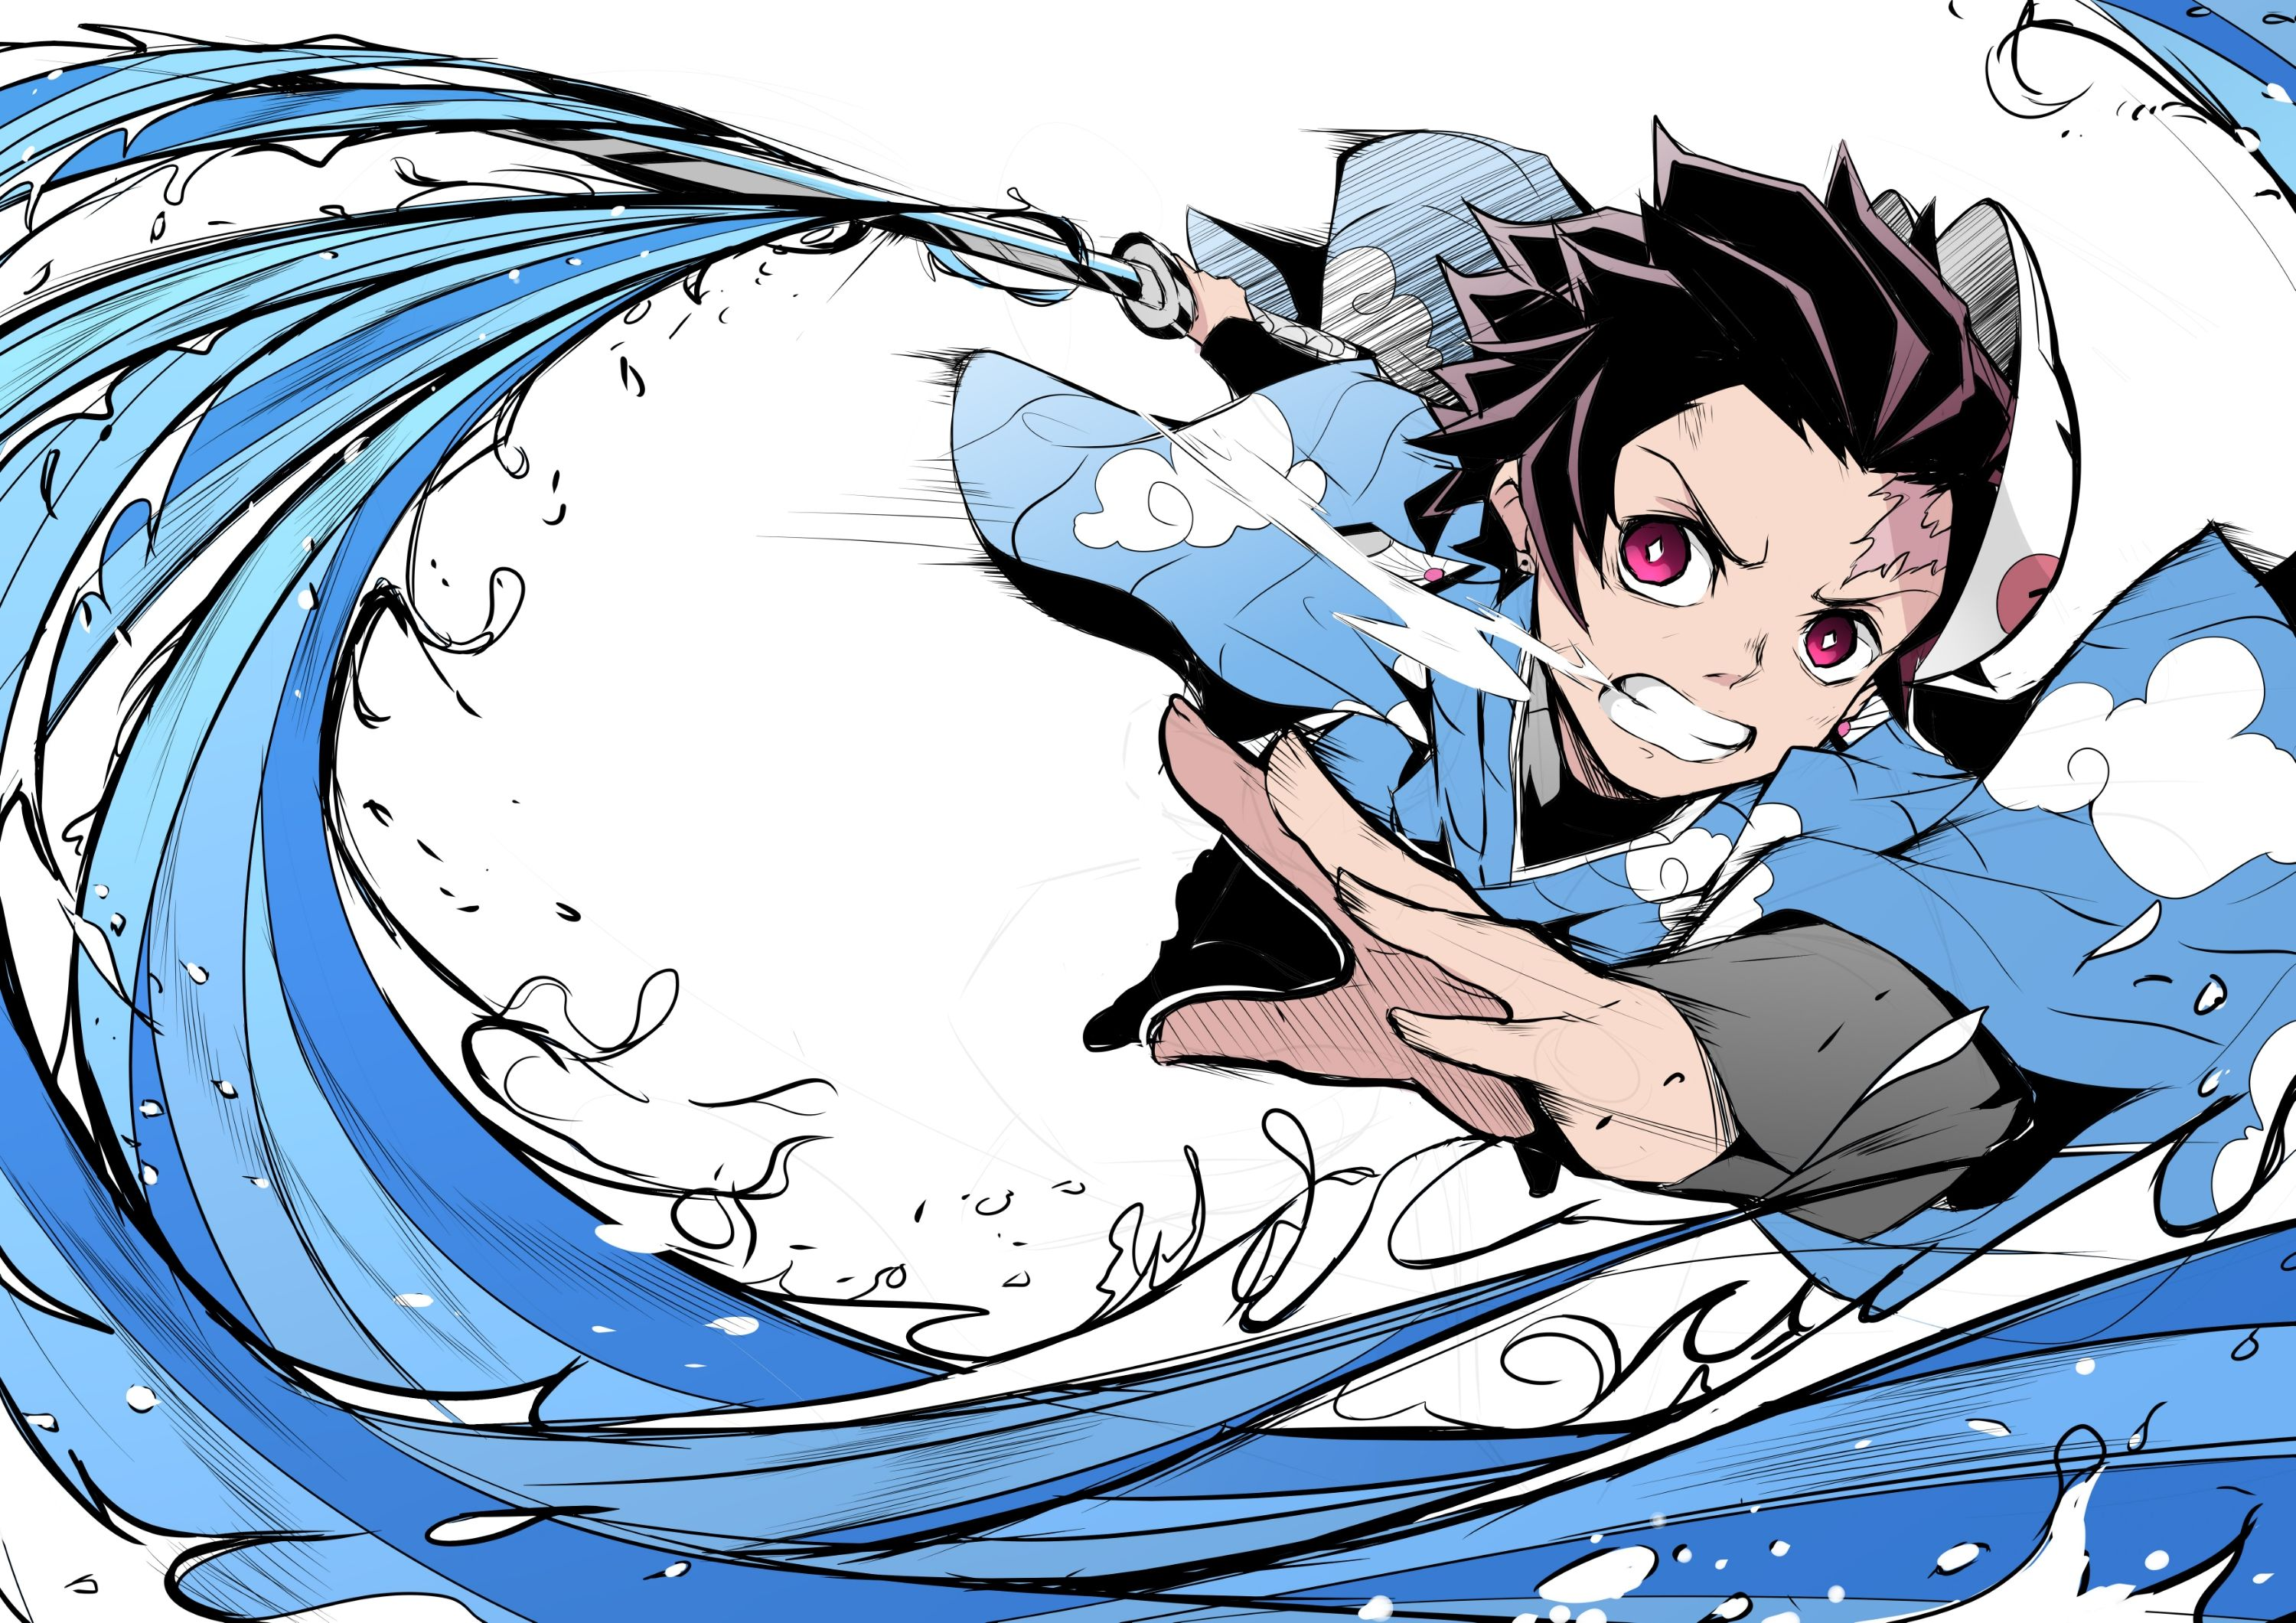 Kimetsu No Yaiba In 2020 Anime Demon Anime Wallpaper Anime